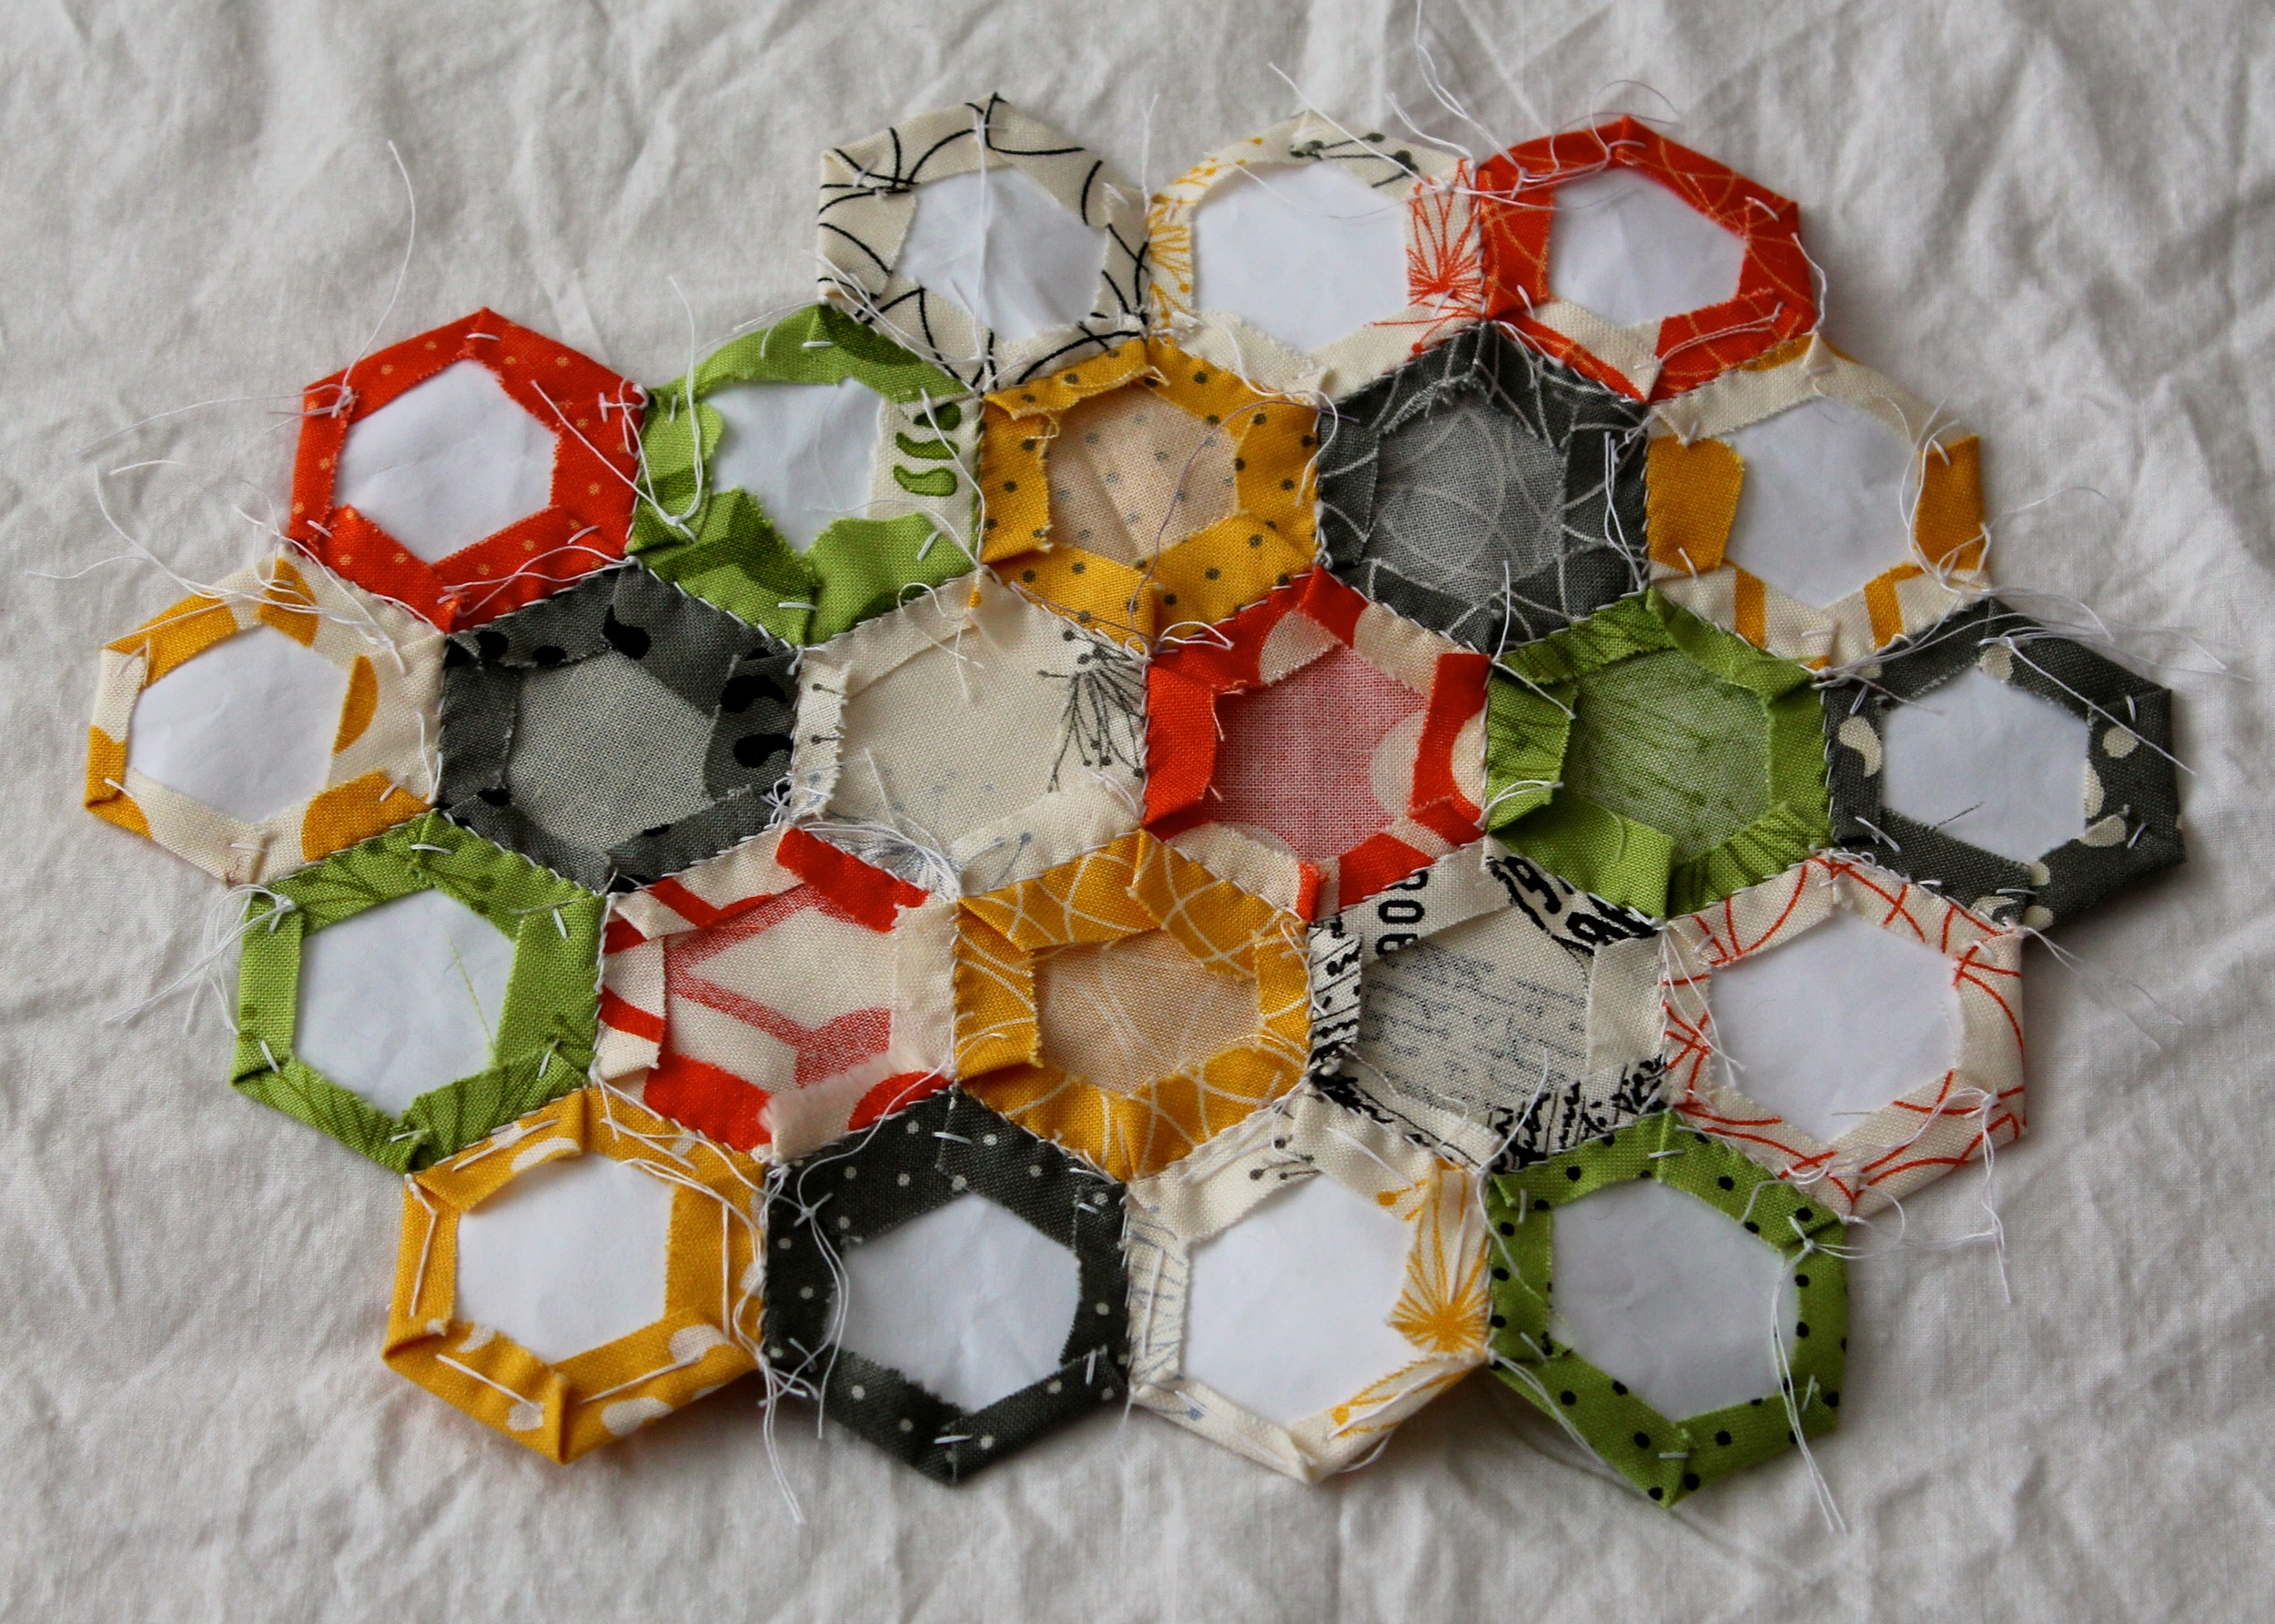 the back of paper pieced hexagons in yellow, green, gray, white, and orange fabric